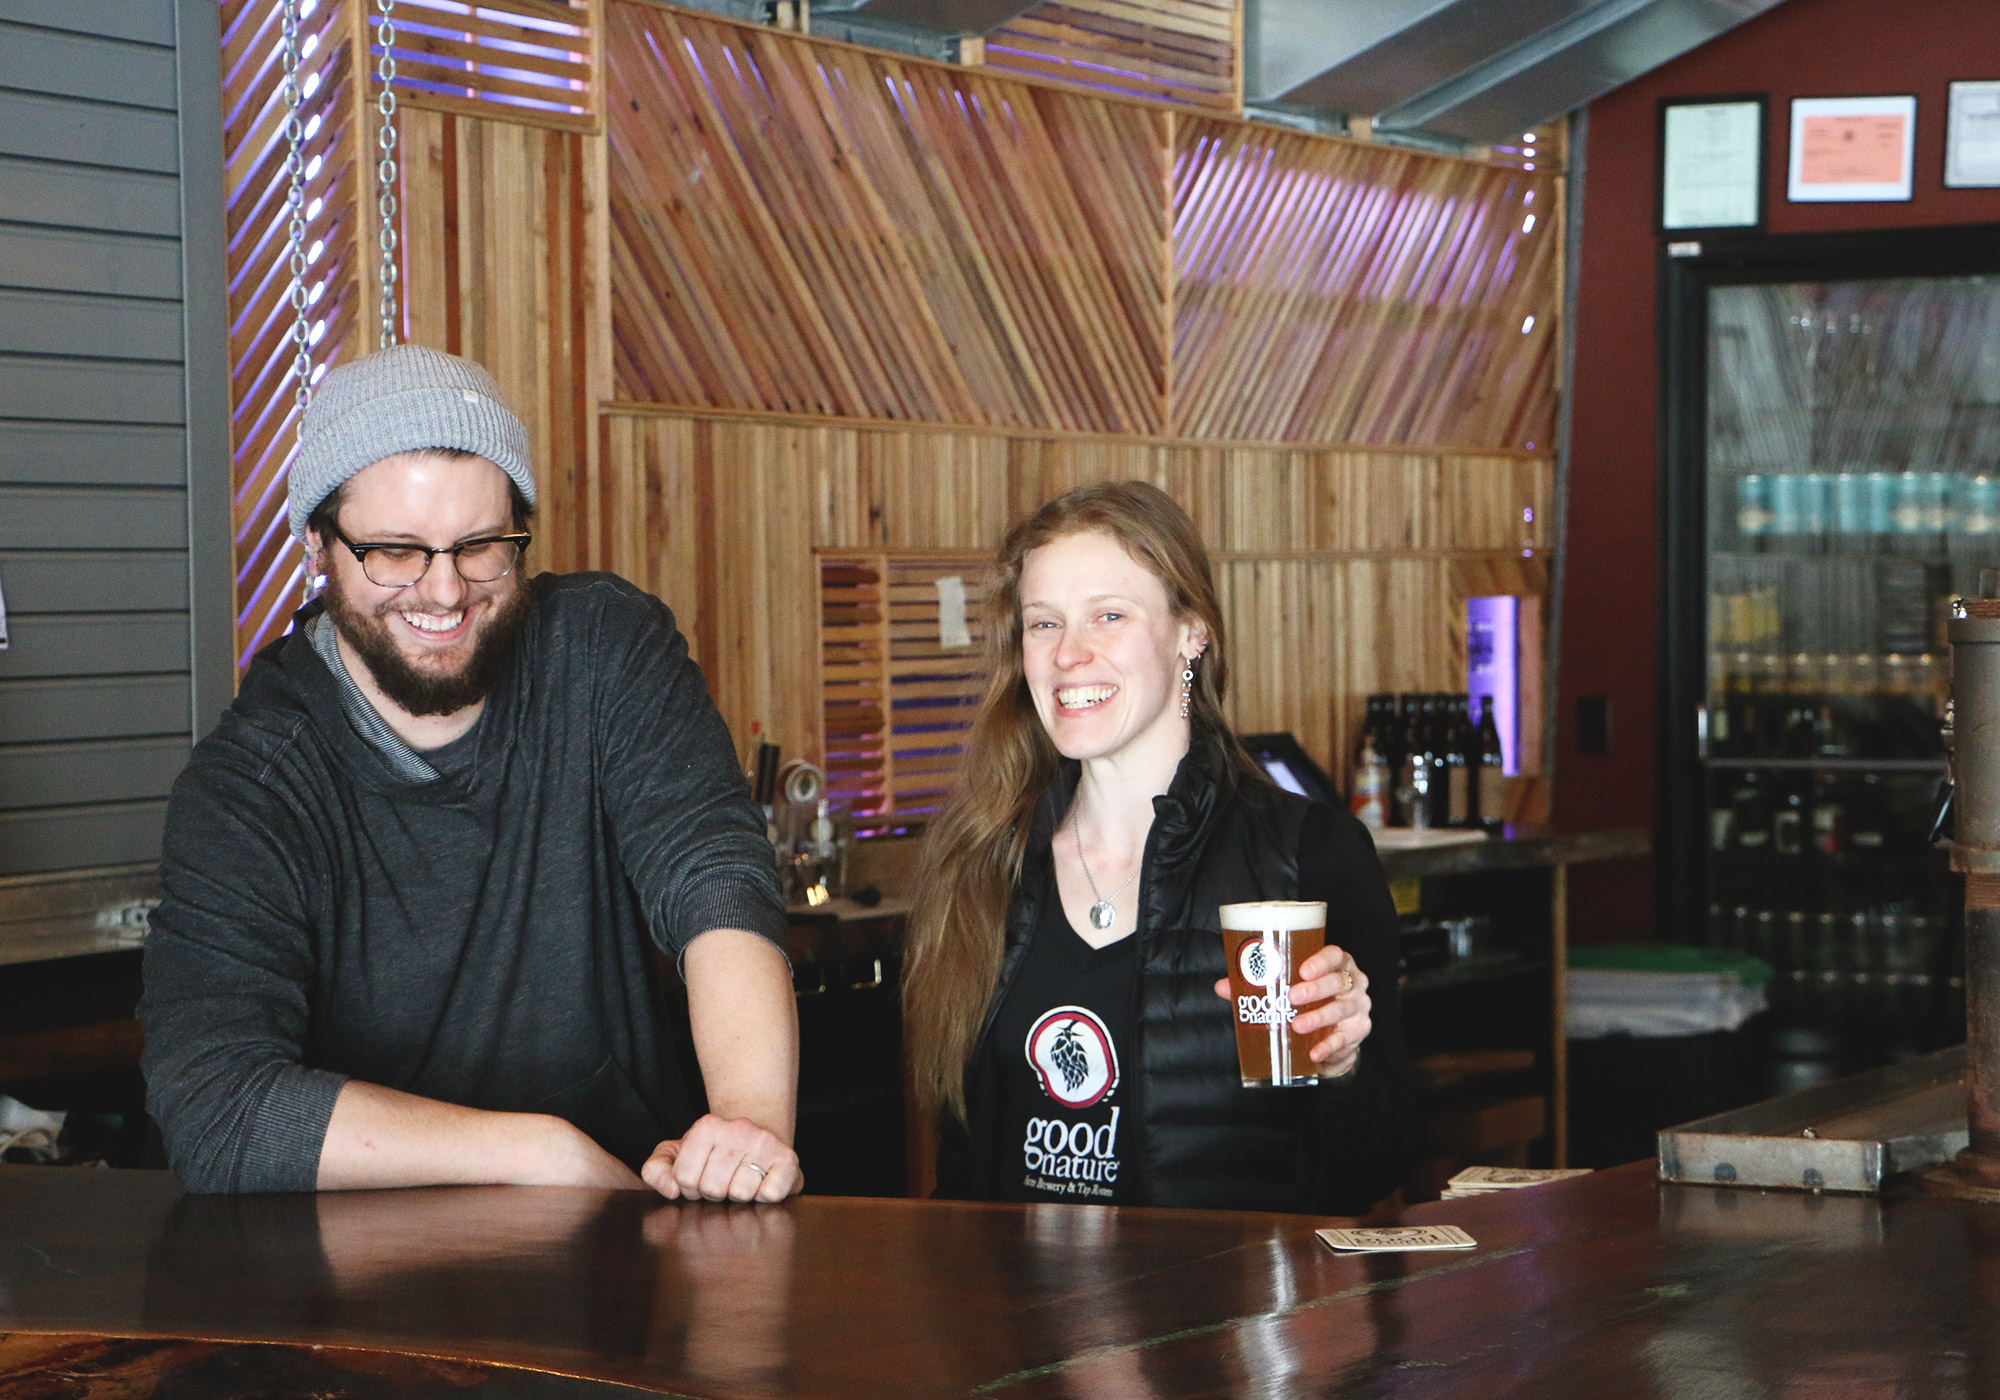 Head Brewer Chad Talboom & Owner Carrie Blackmore